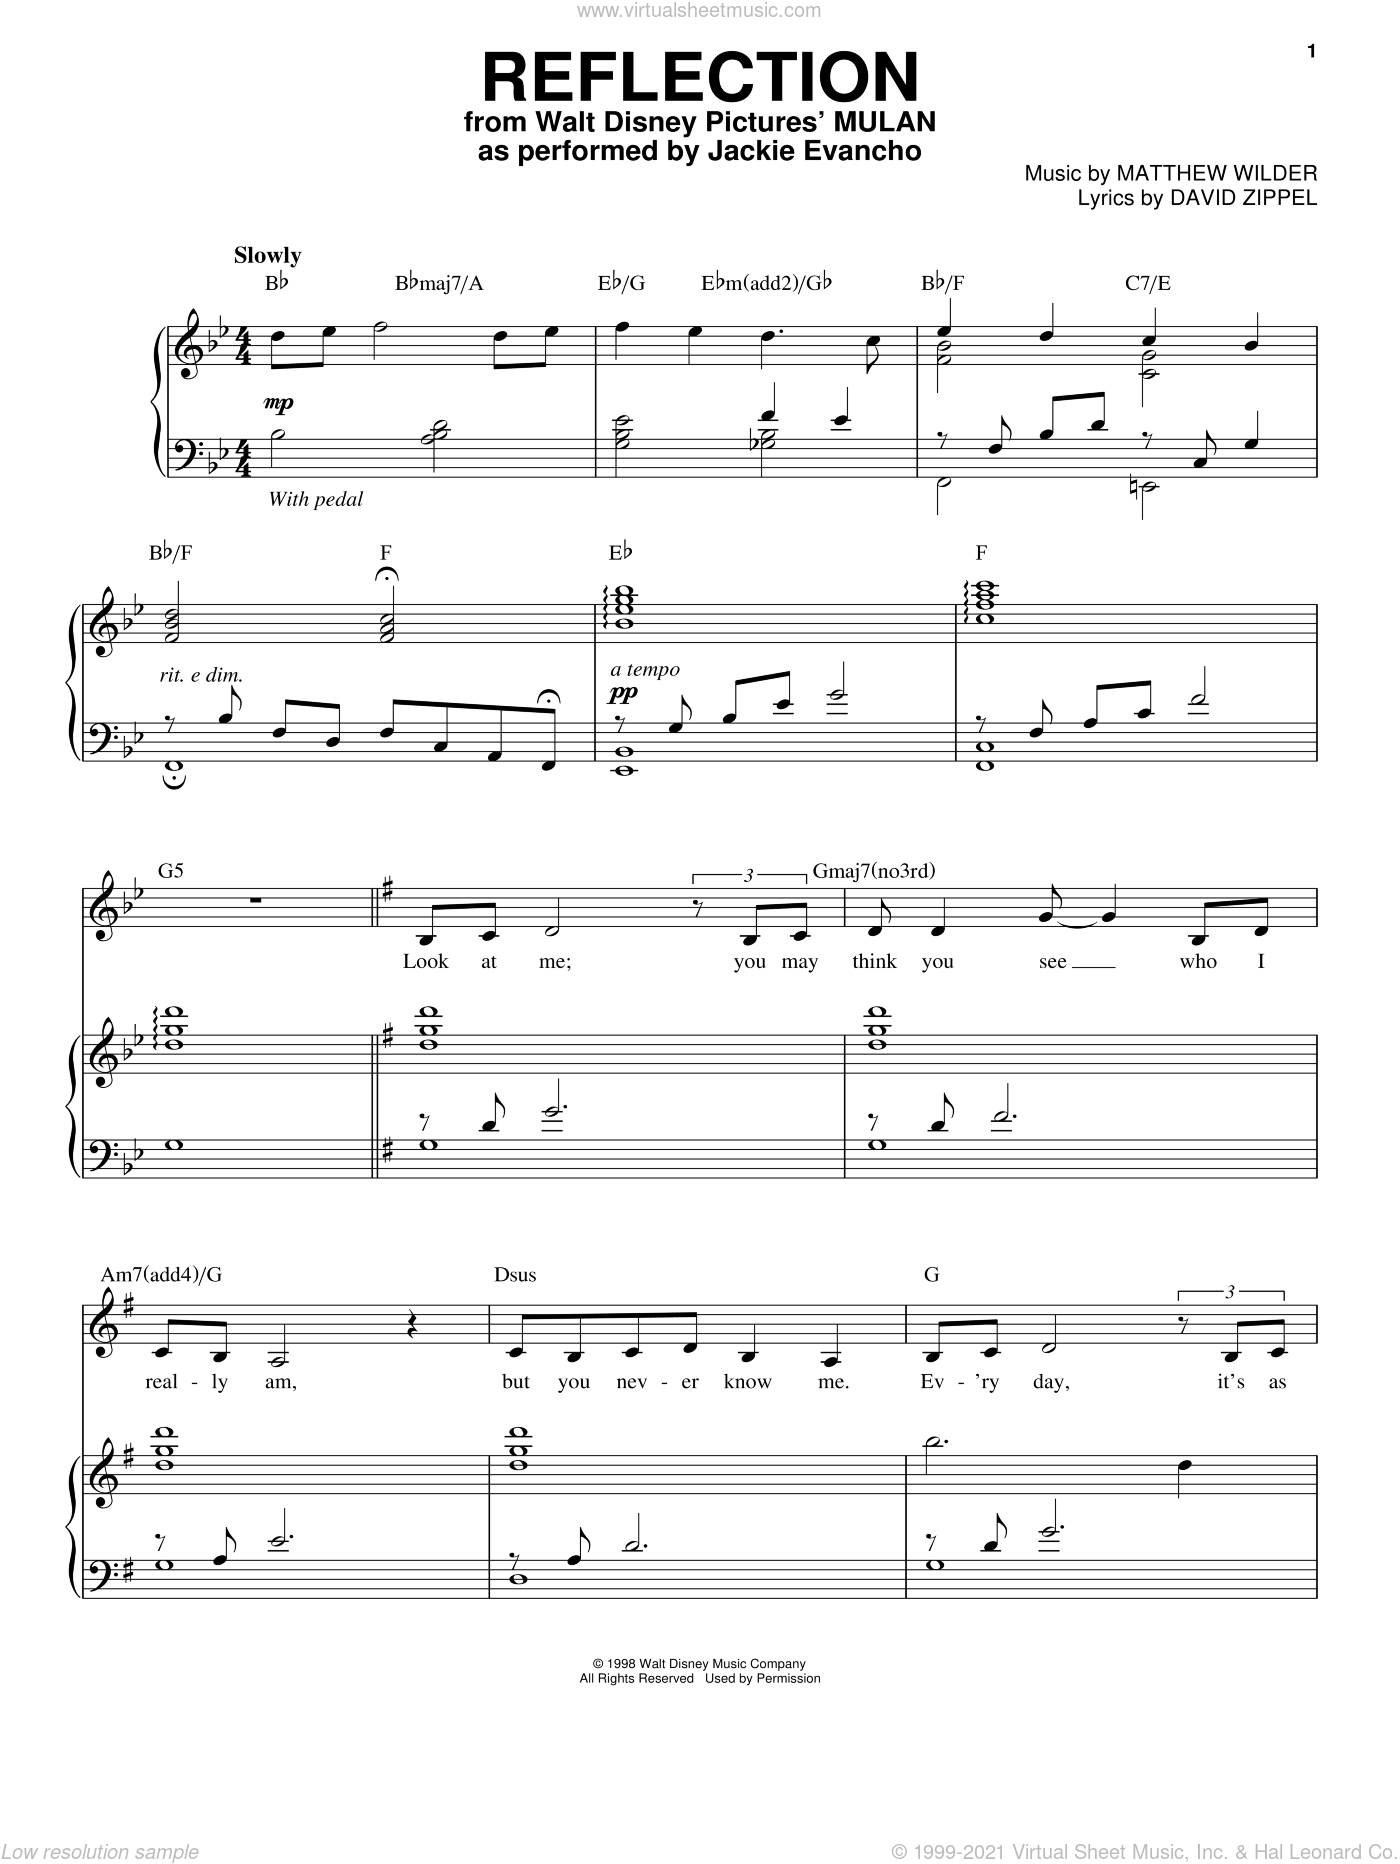 Reflection (from Mulan) sheet music for voice and piano by Jackie Evancho, intermediate skill level